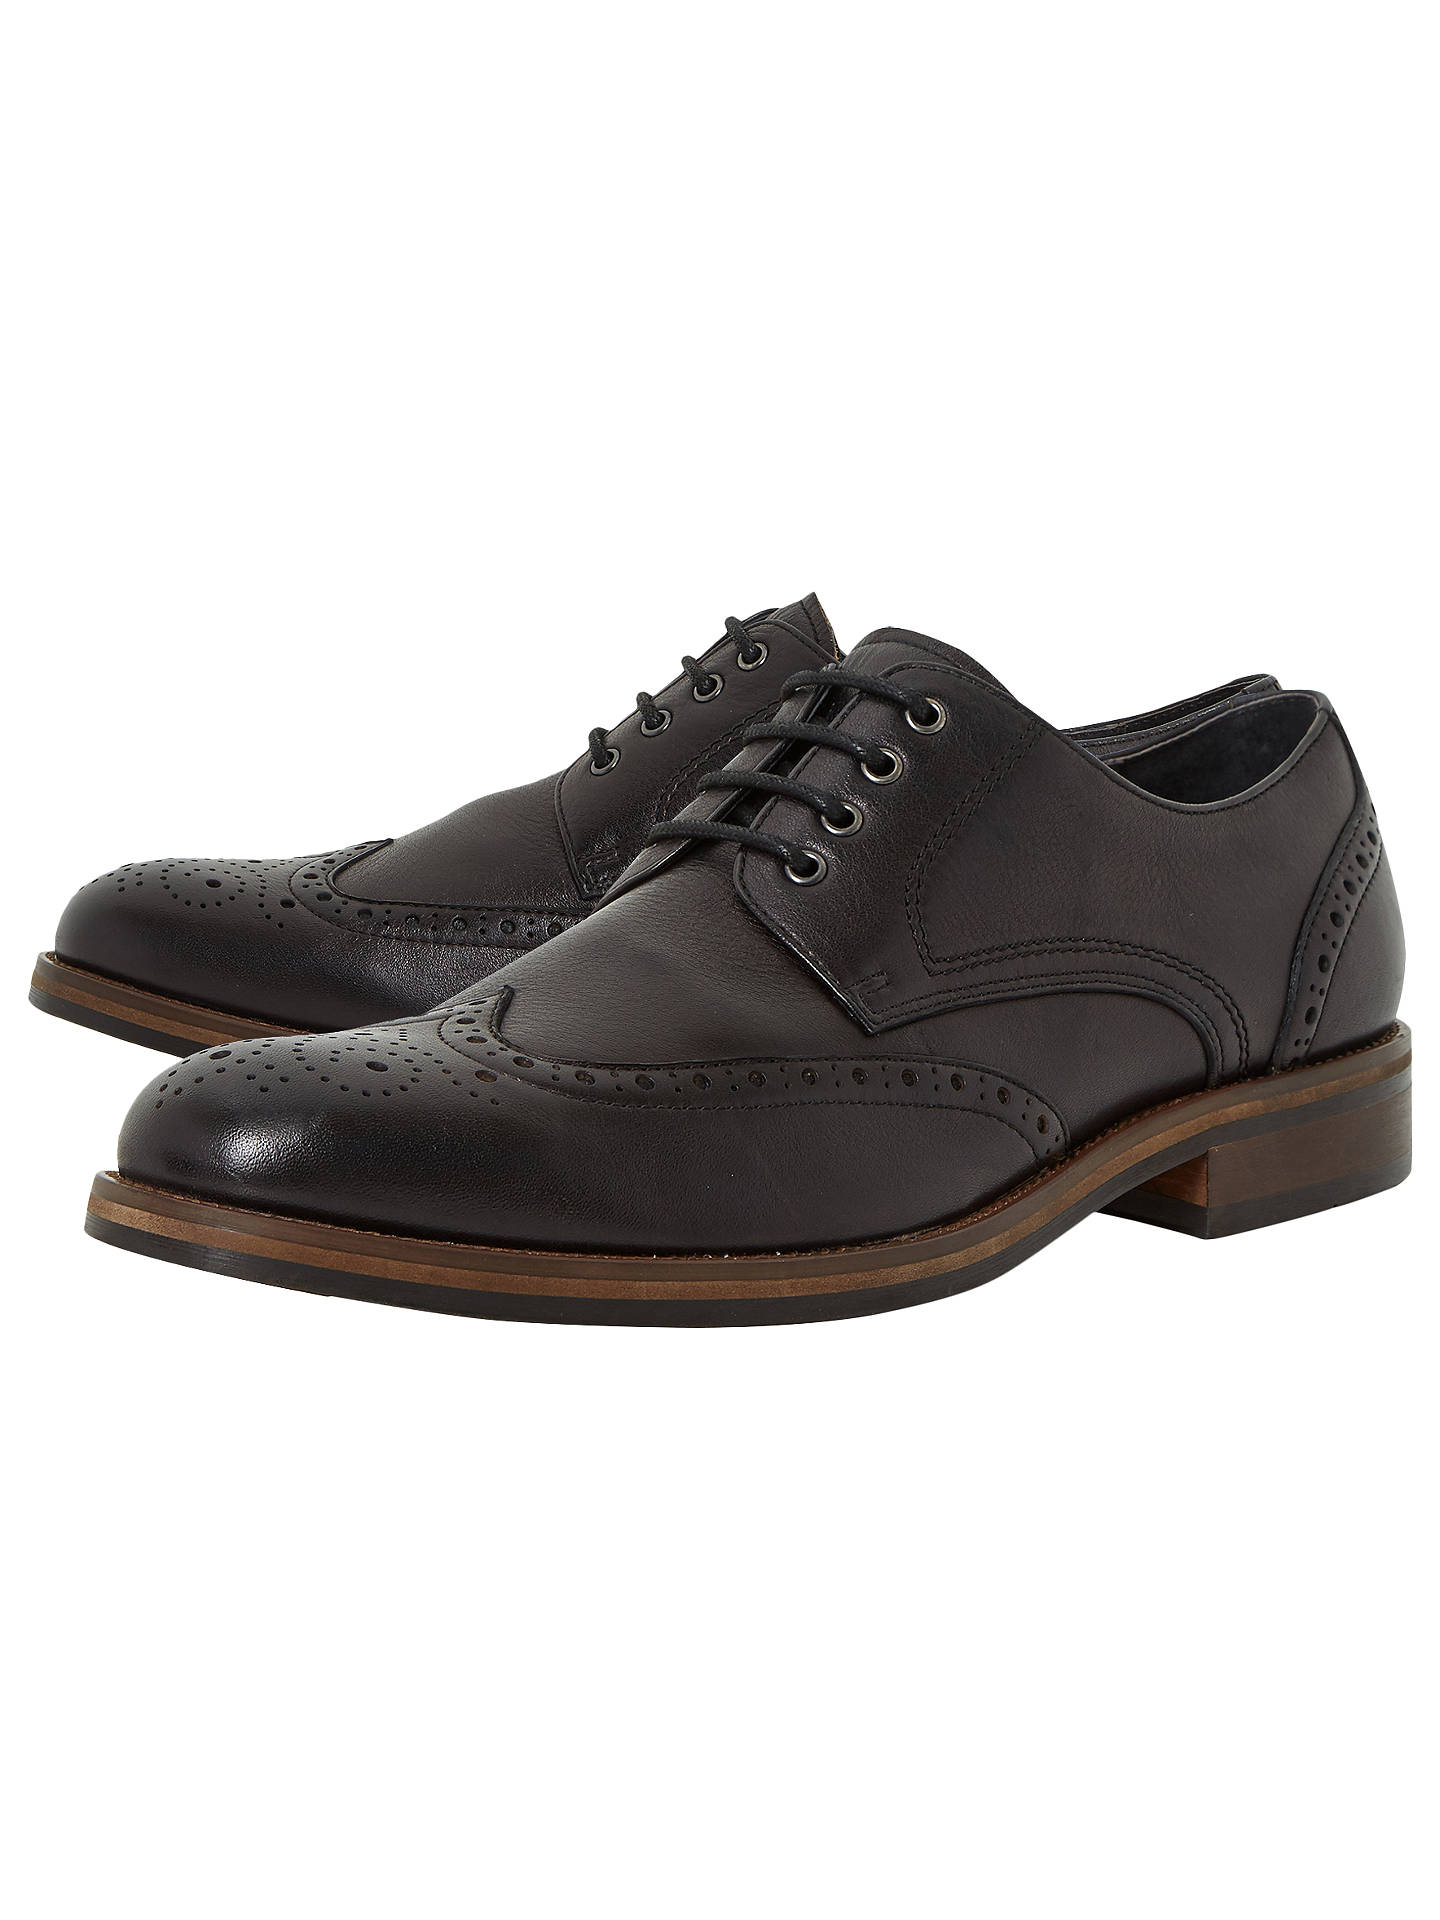 BuyBertie Packman Chunky Derby Brogues, Black, 6 Online at johnlewis.com